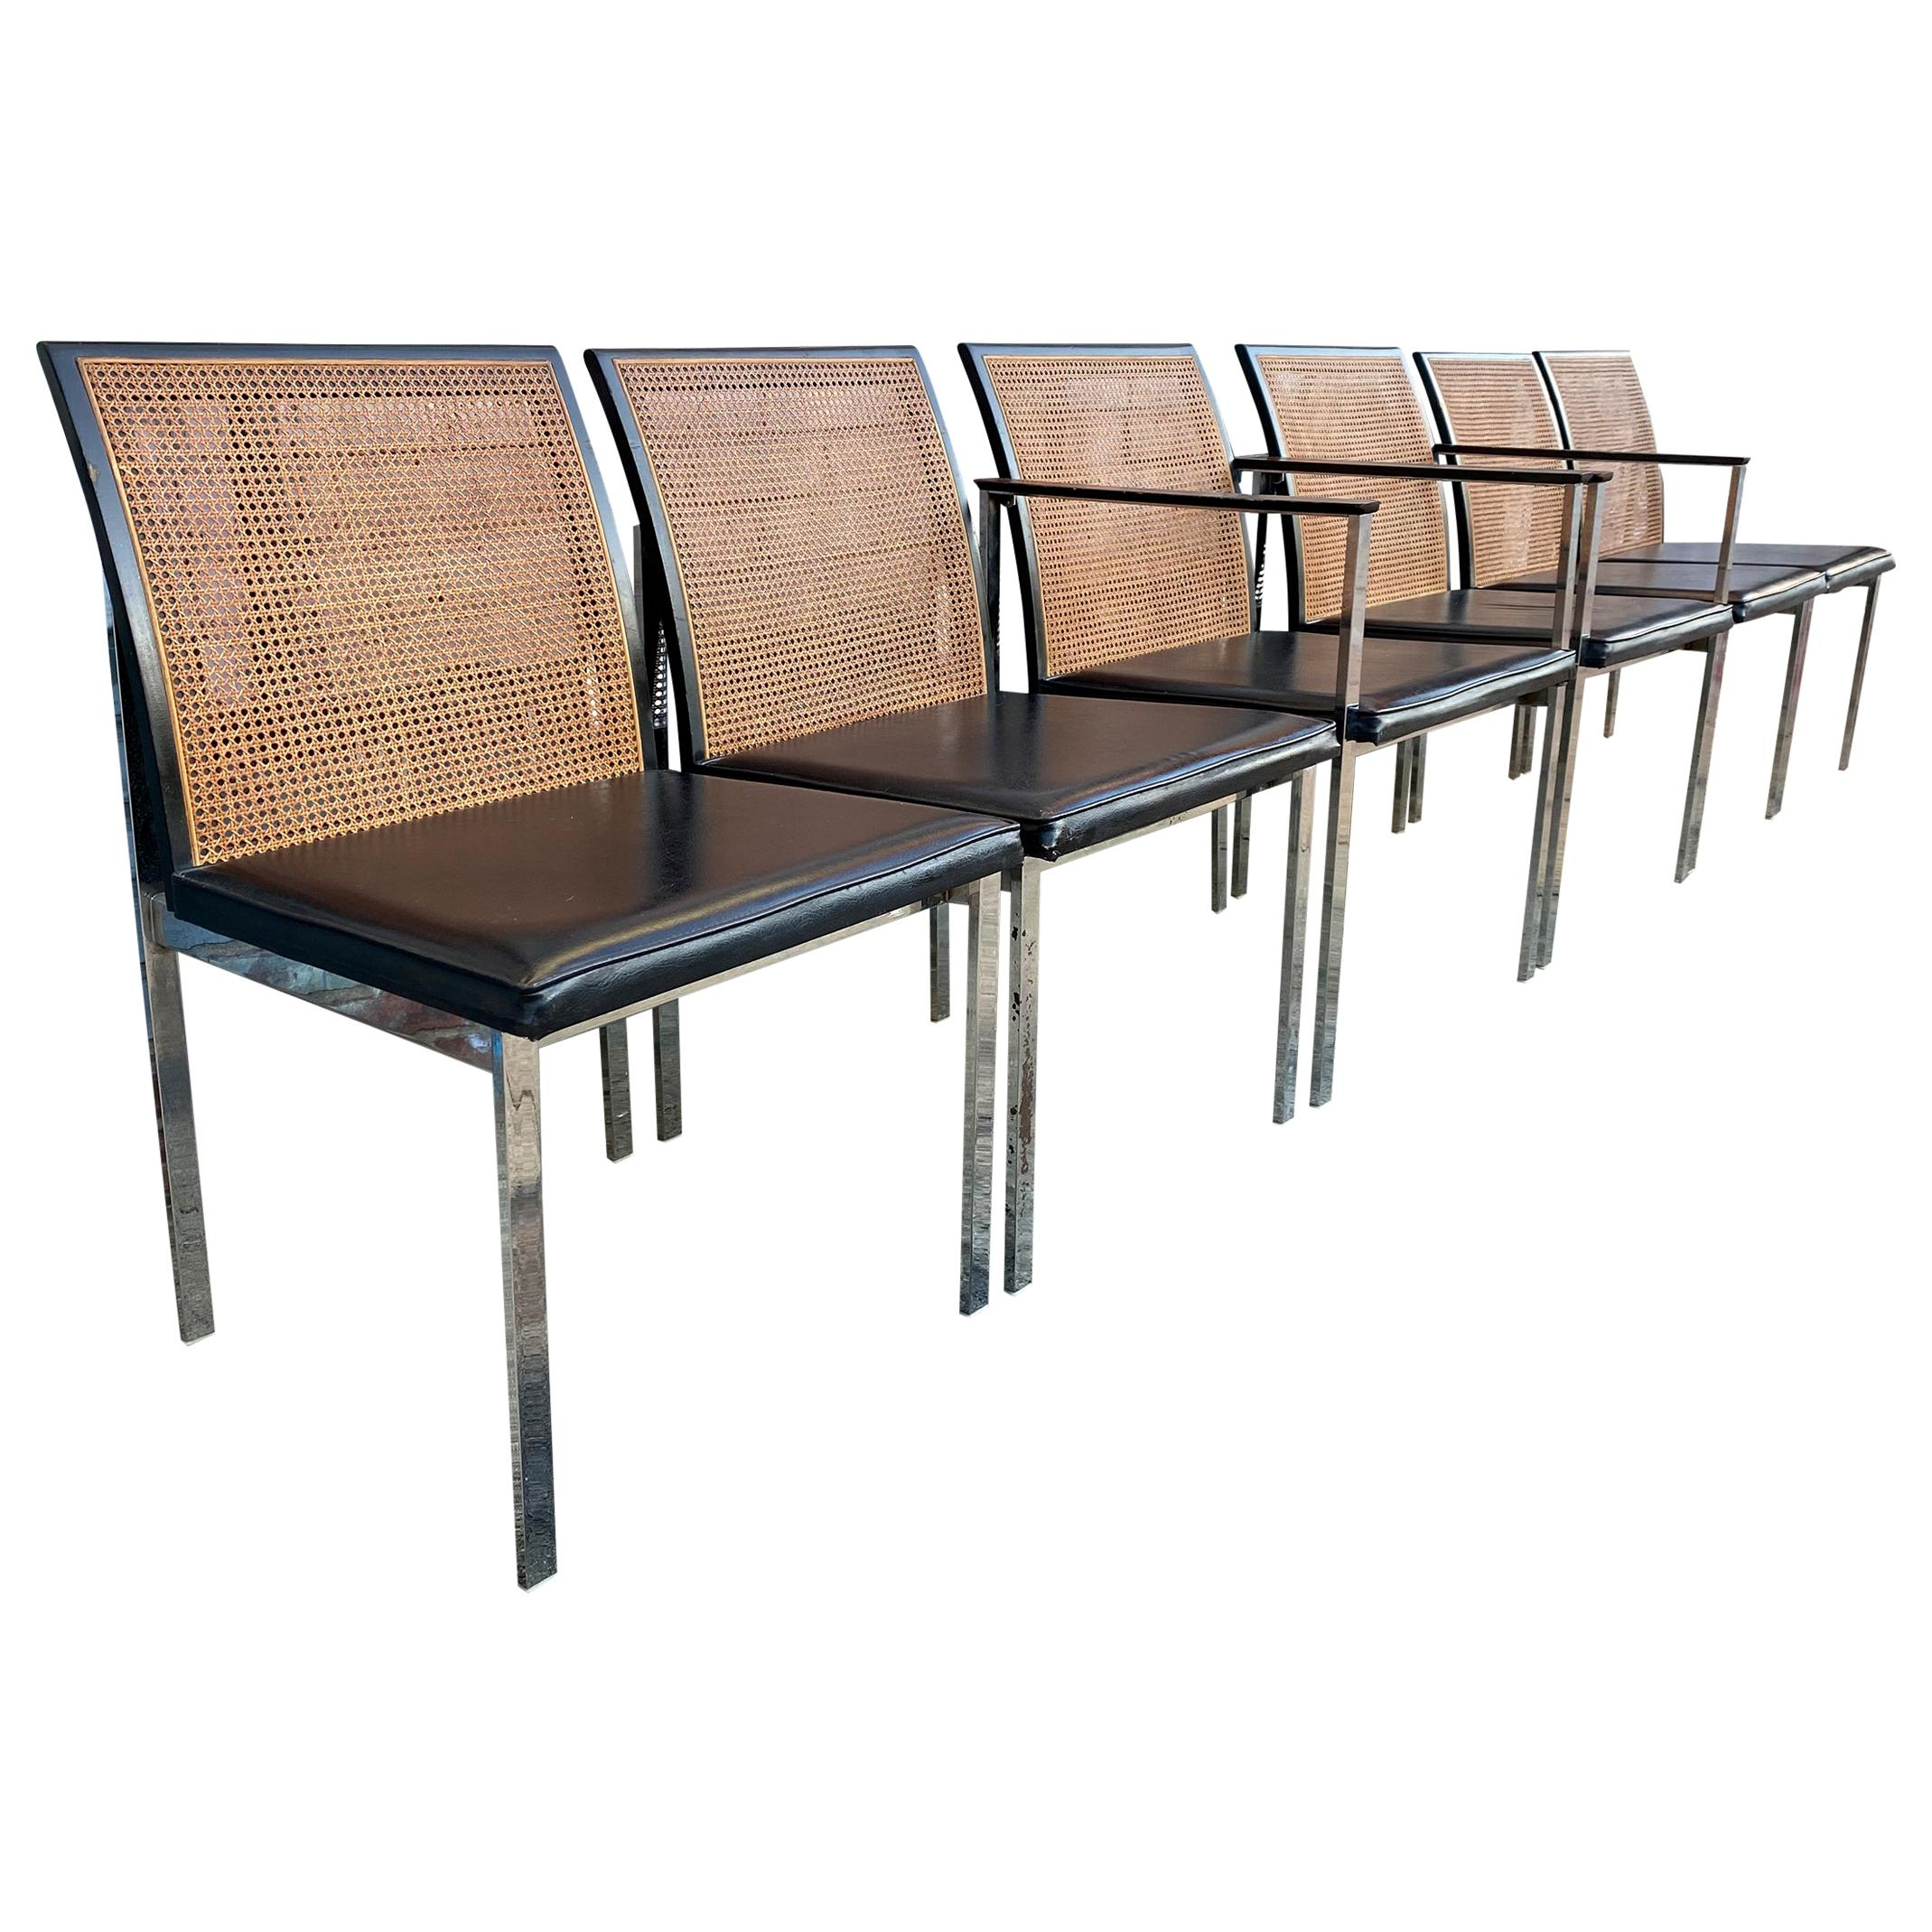 Set of 6 Midcentury Paul McCobb for Lane Chrome Black Cane Back Dining Chairs